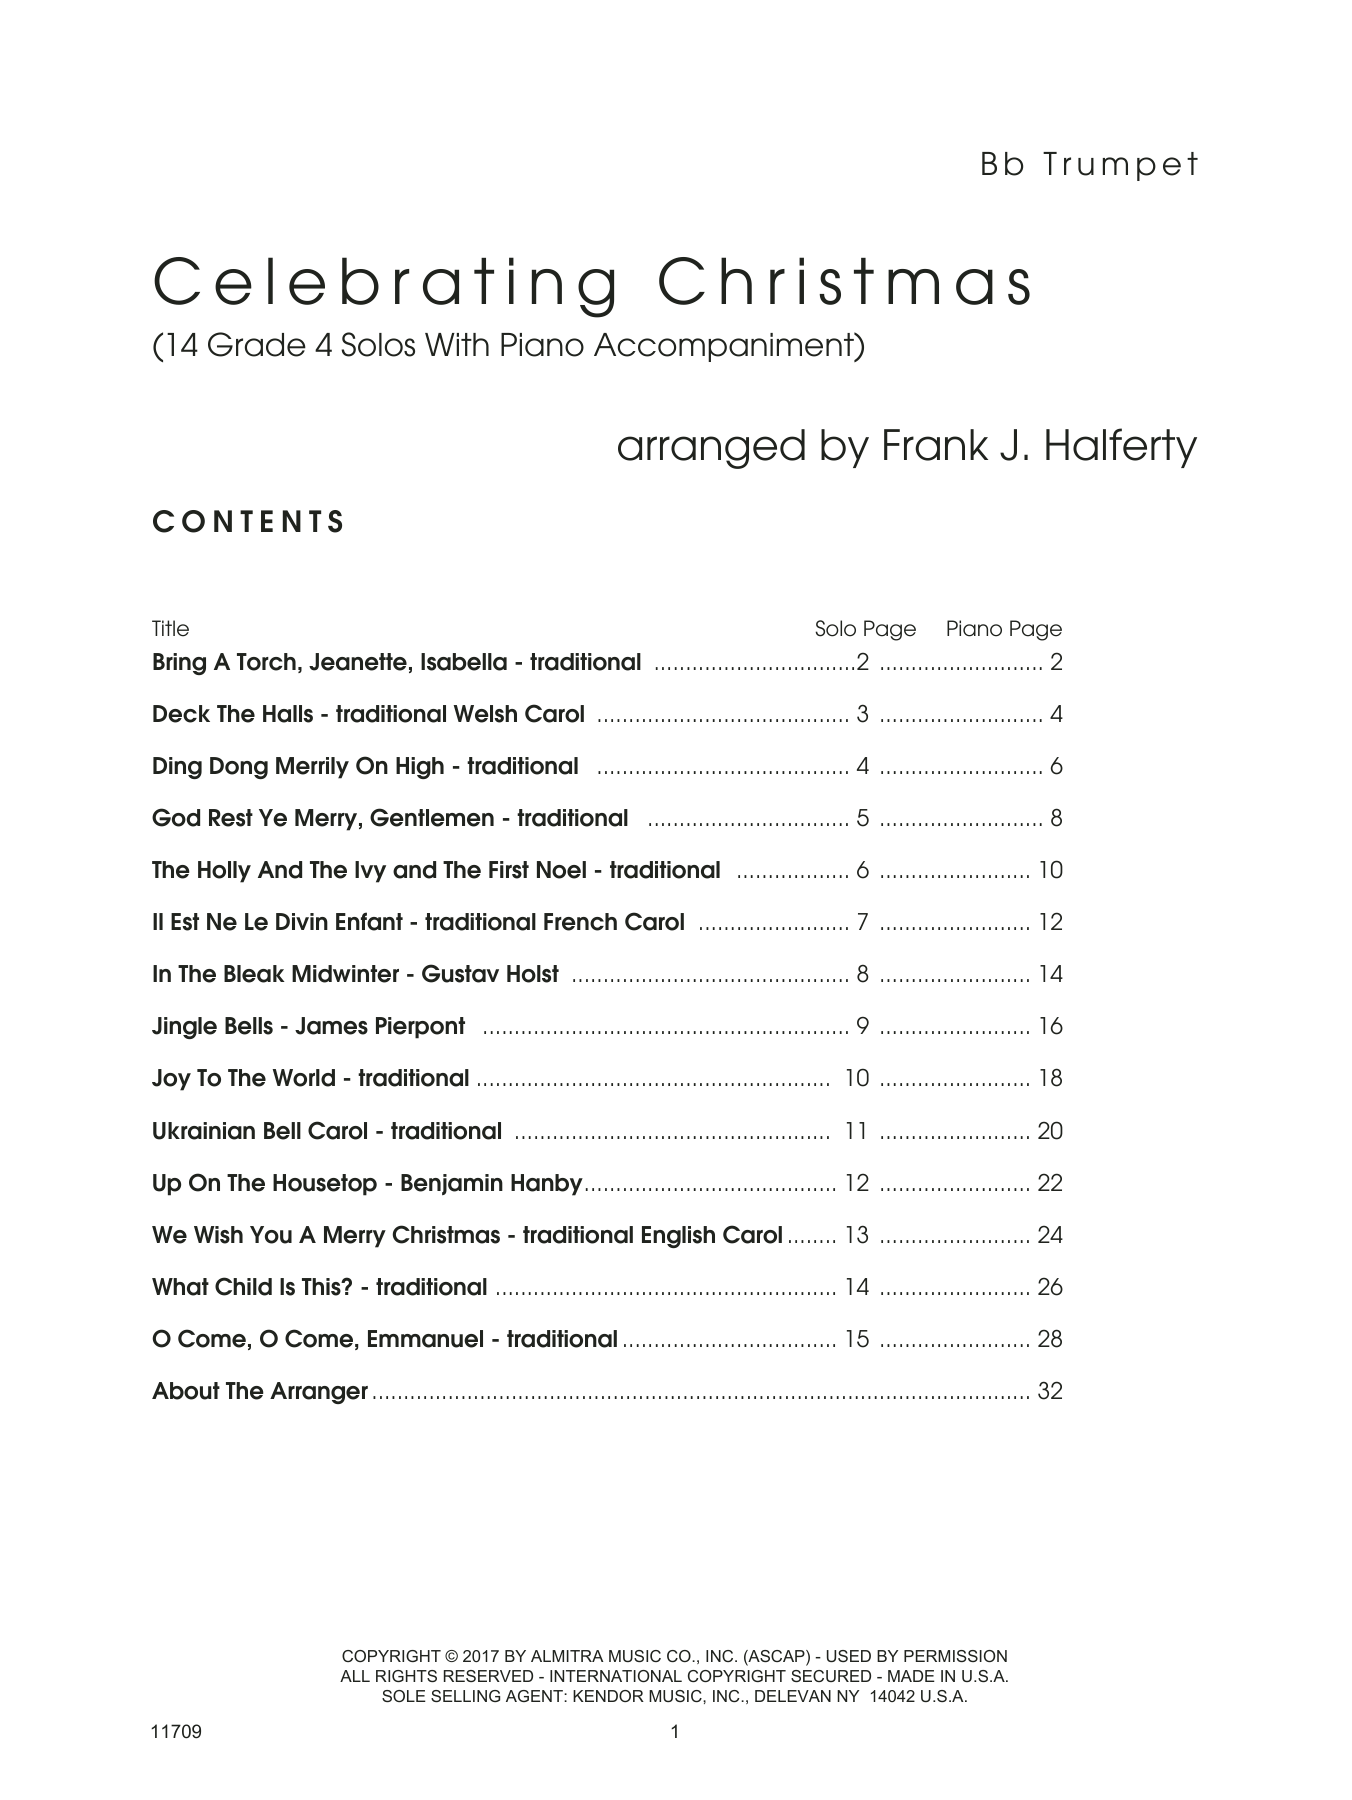 Frank J. Halferty Celebrating Christmas (14 Grade 4 Solos With Piano Accompaniment) - Bb Trumpet sheet music notes and chords. Download Printable PDF.